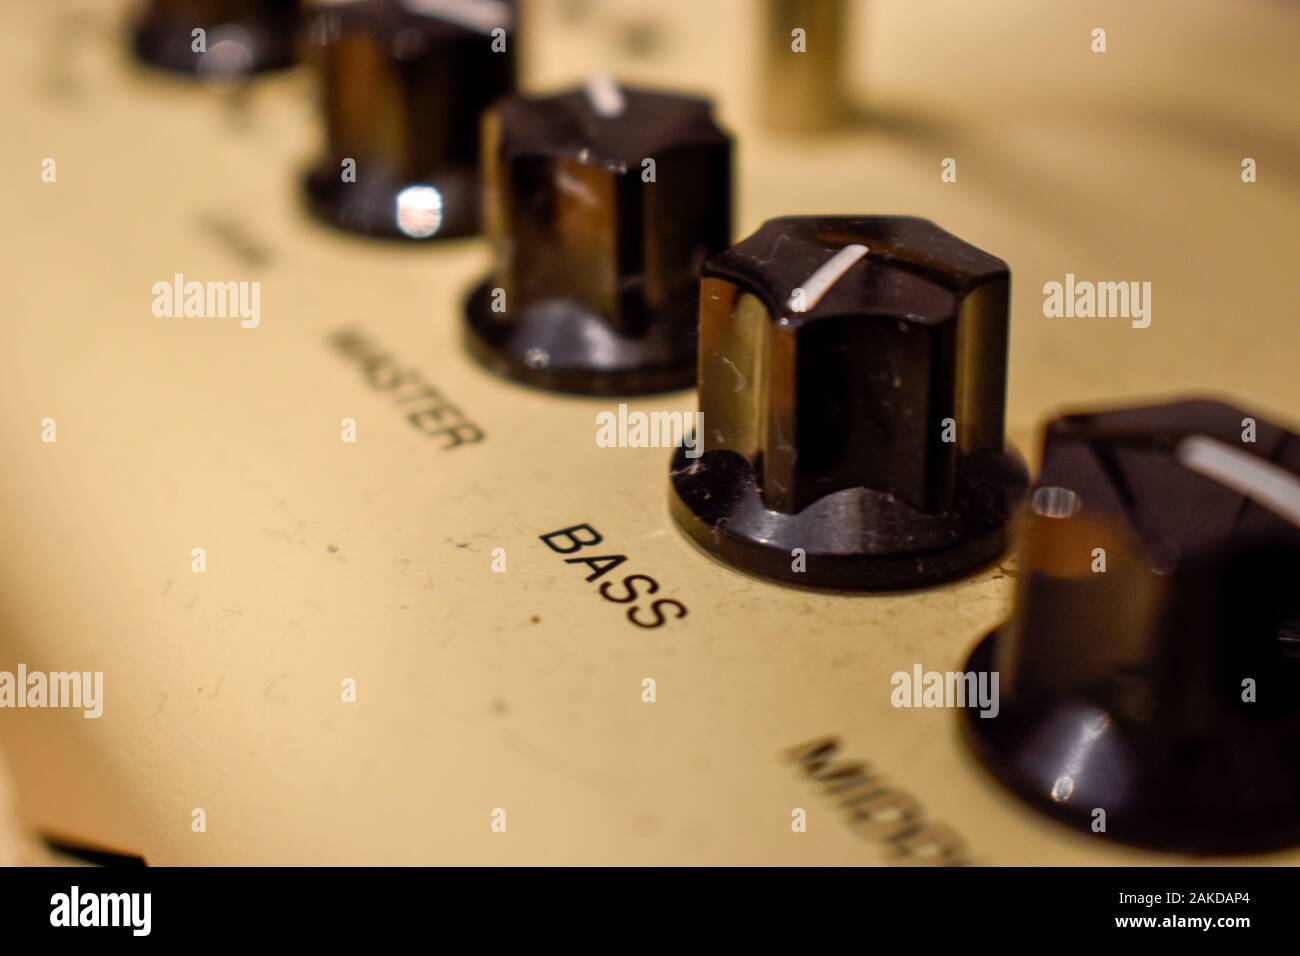 Close up of control knobs on an amp or amplifier for electric and bass guitars Stock Photo